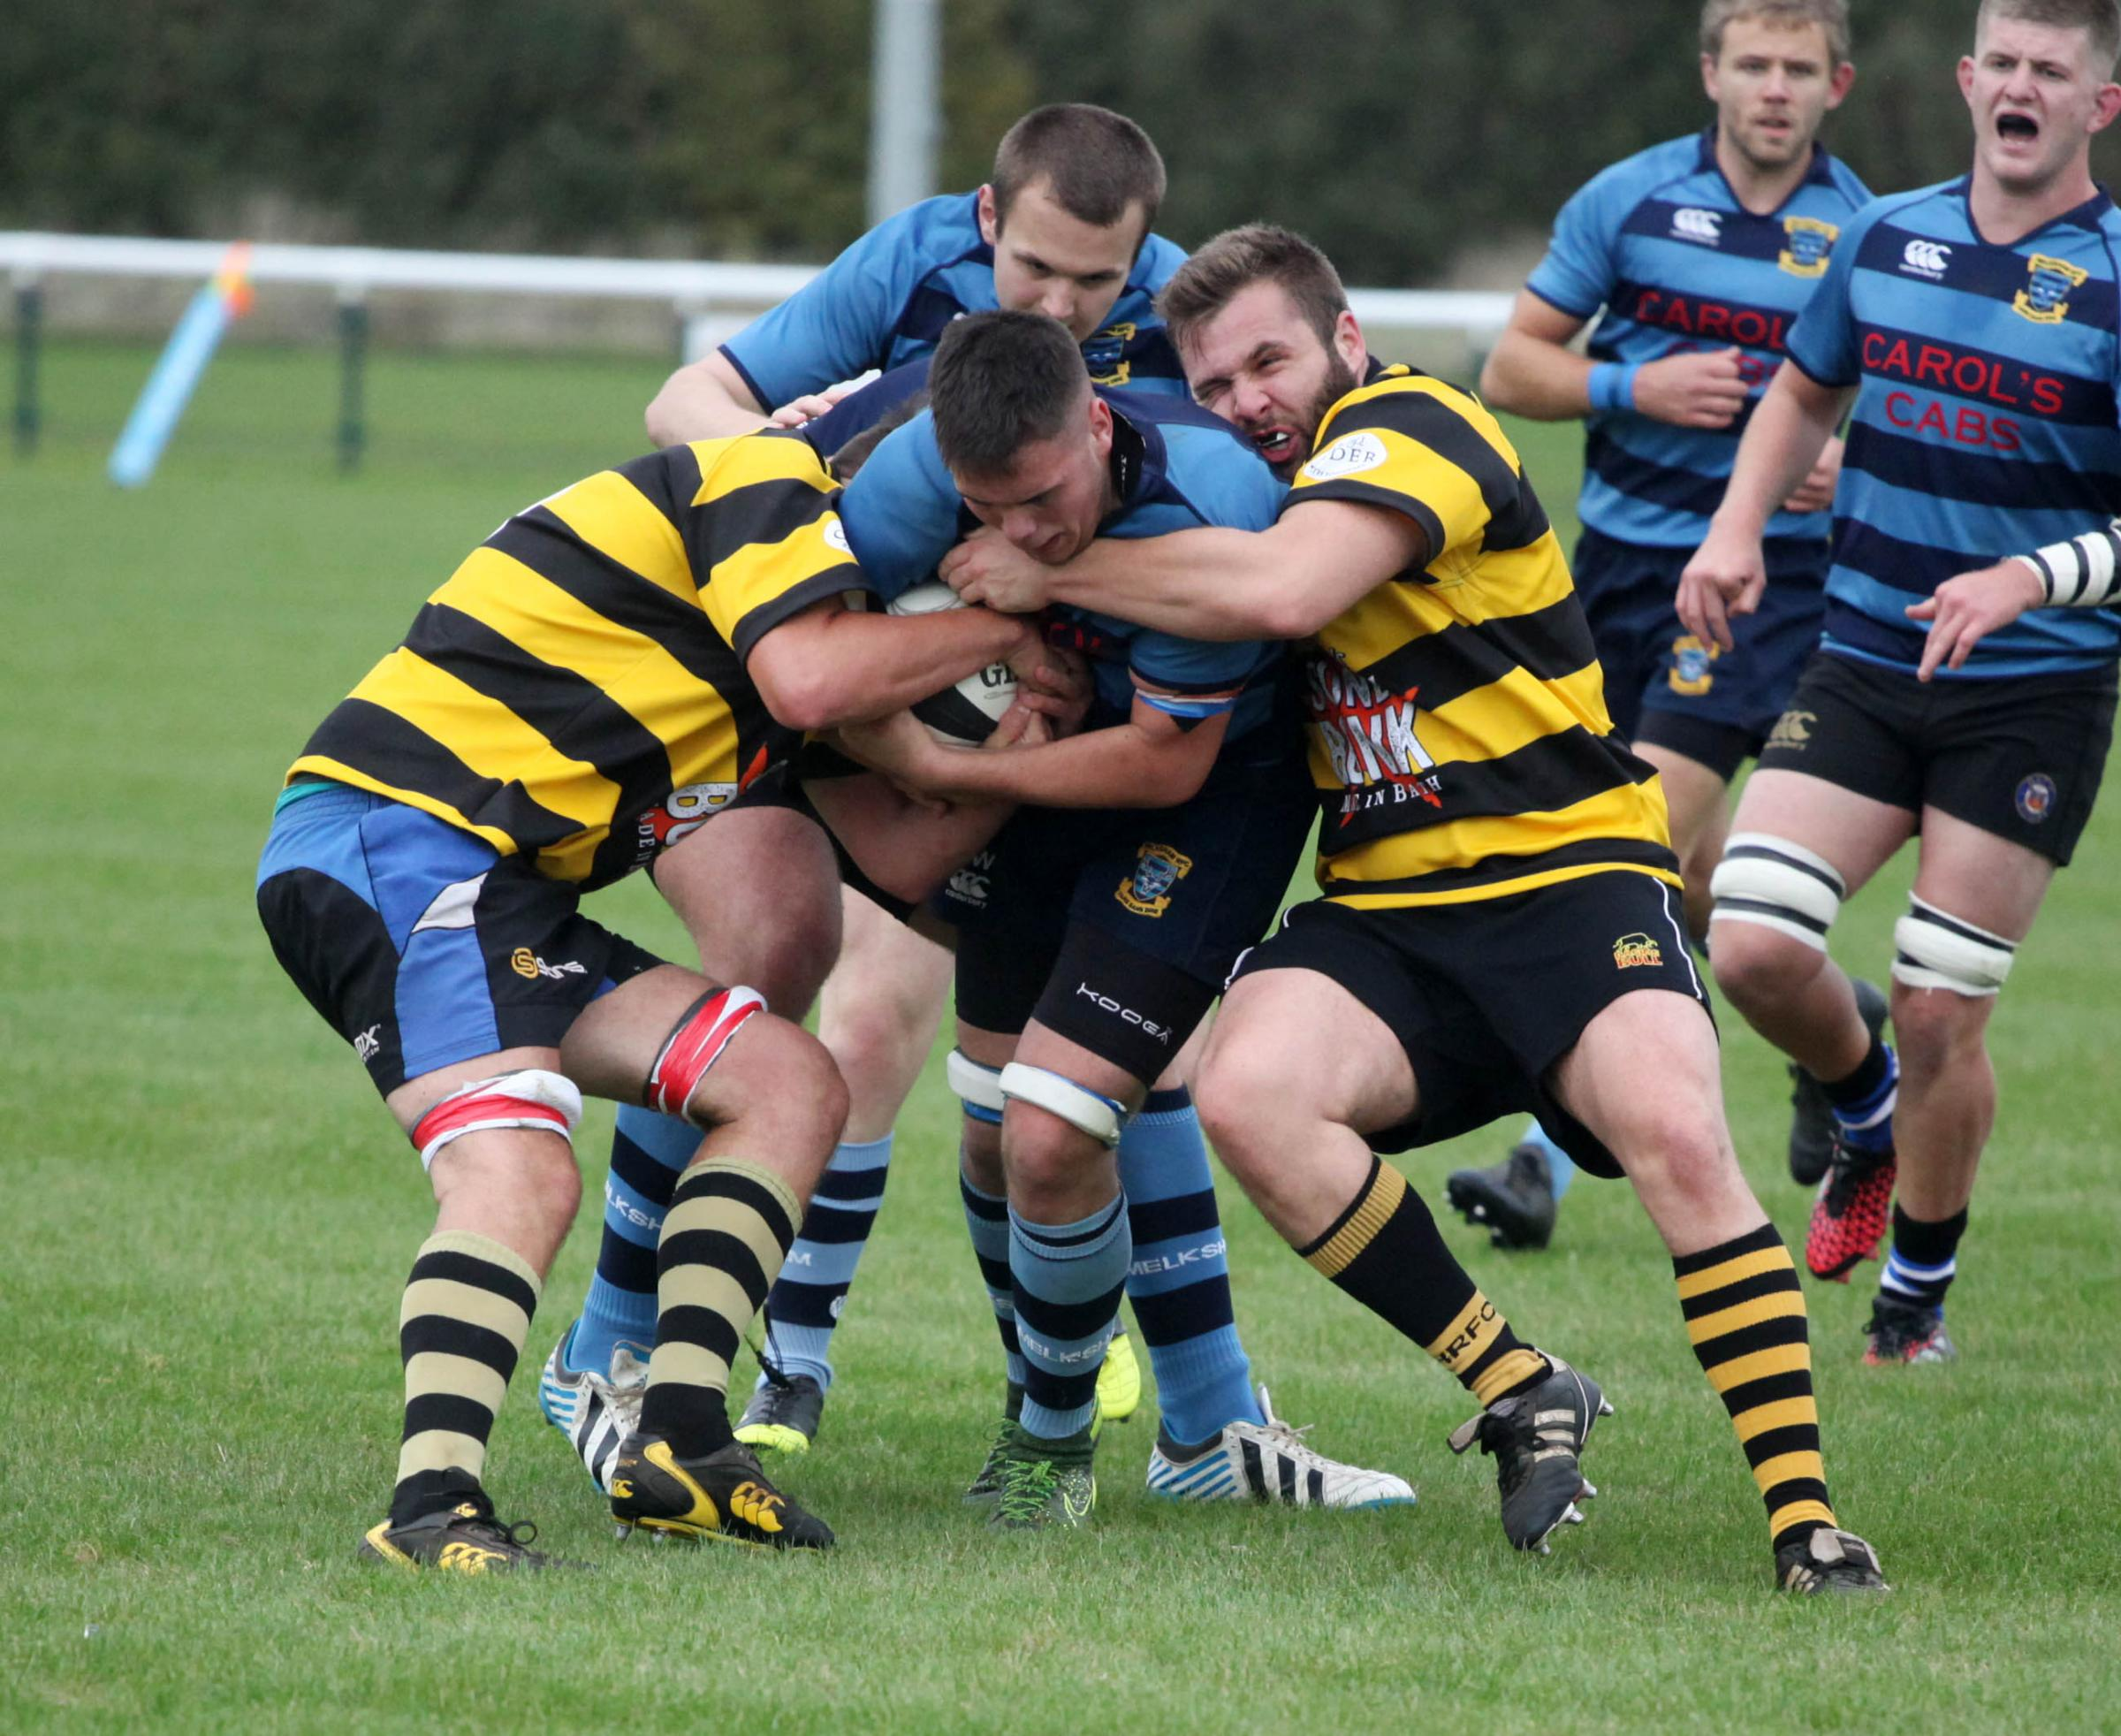 Melksham's Luke Wilkins (blue shirt) has his run halted by Combe Down's Bill Fairman